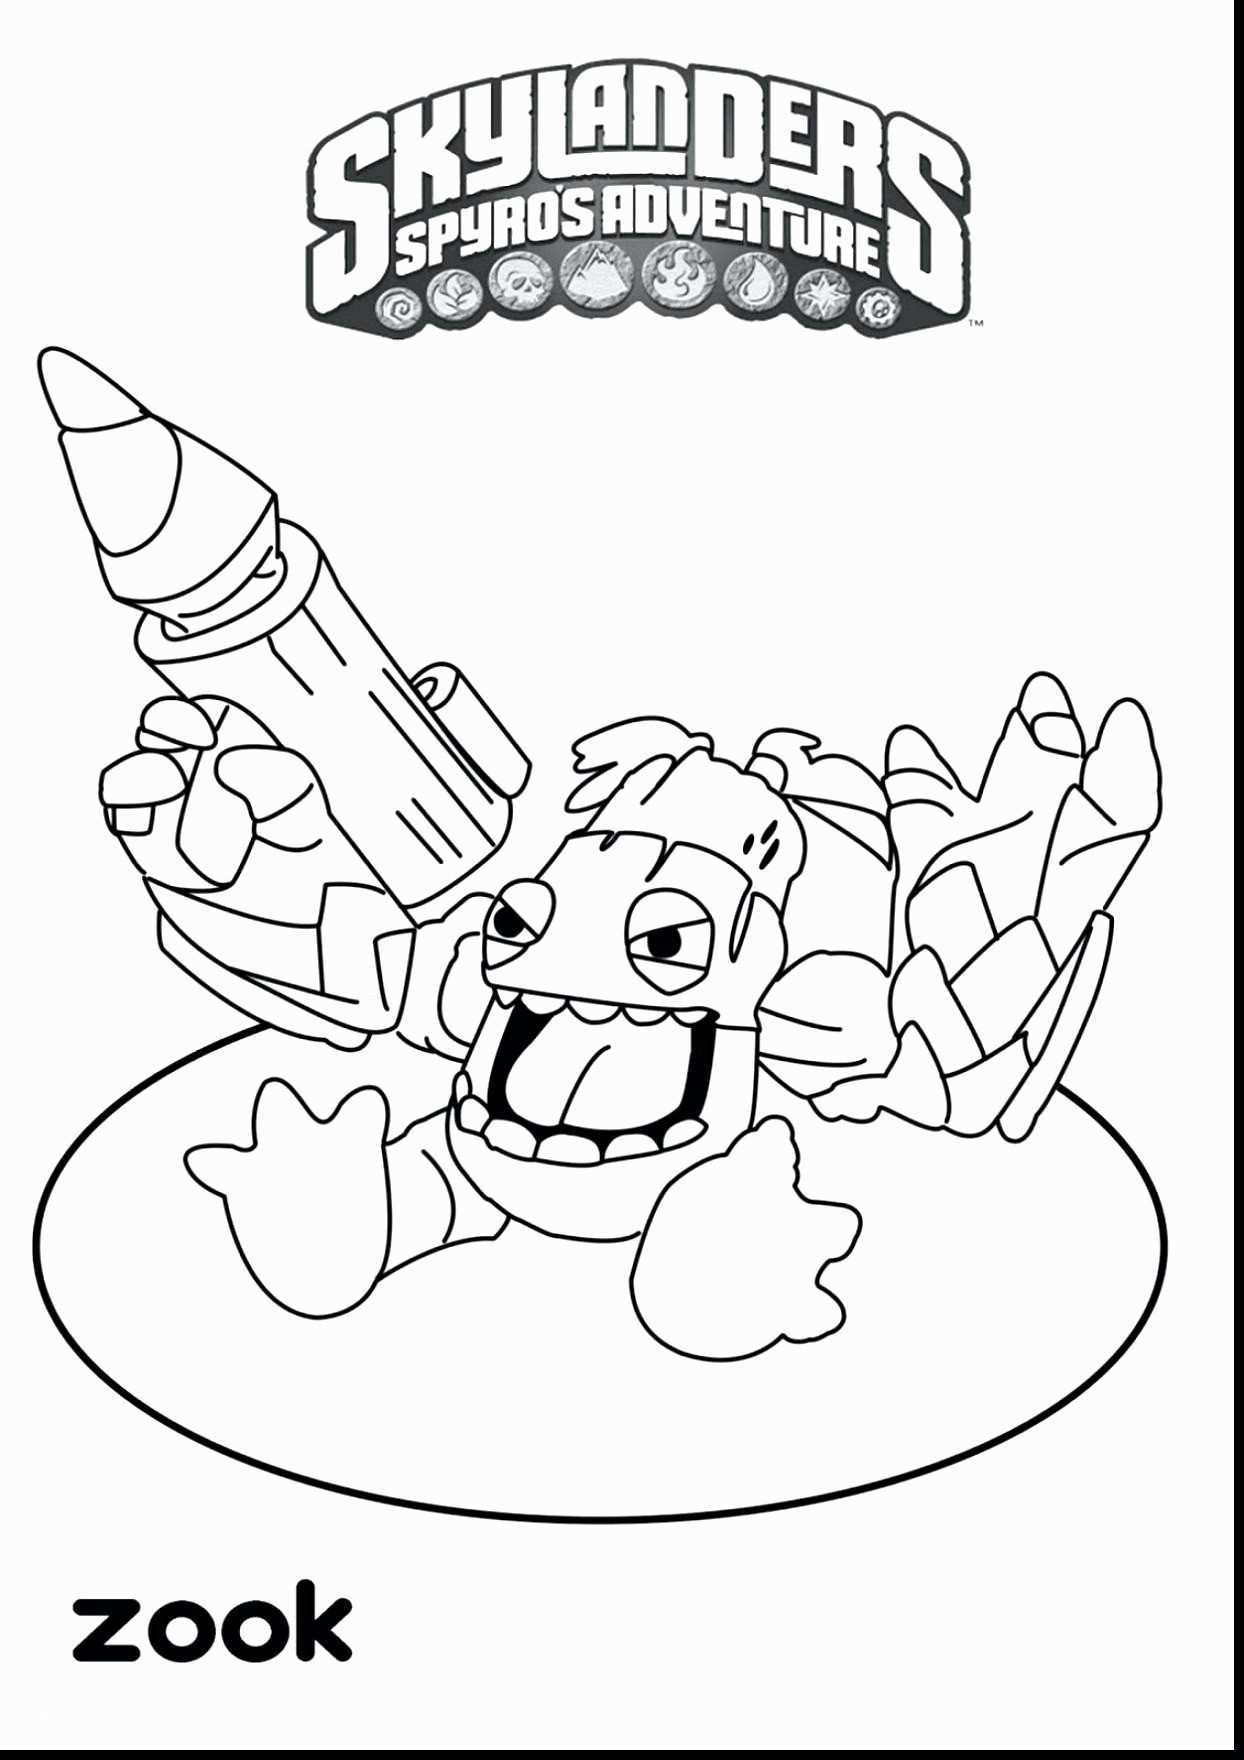 Oriental Trading Coloring Pages Brain Coloring Page New Oriental Trading Coloring Pages Coloring Pages